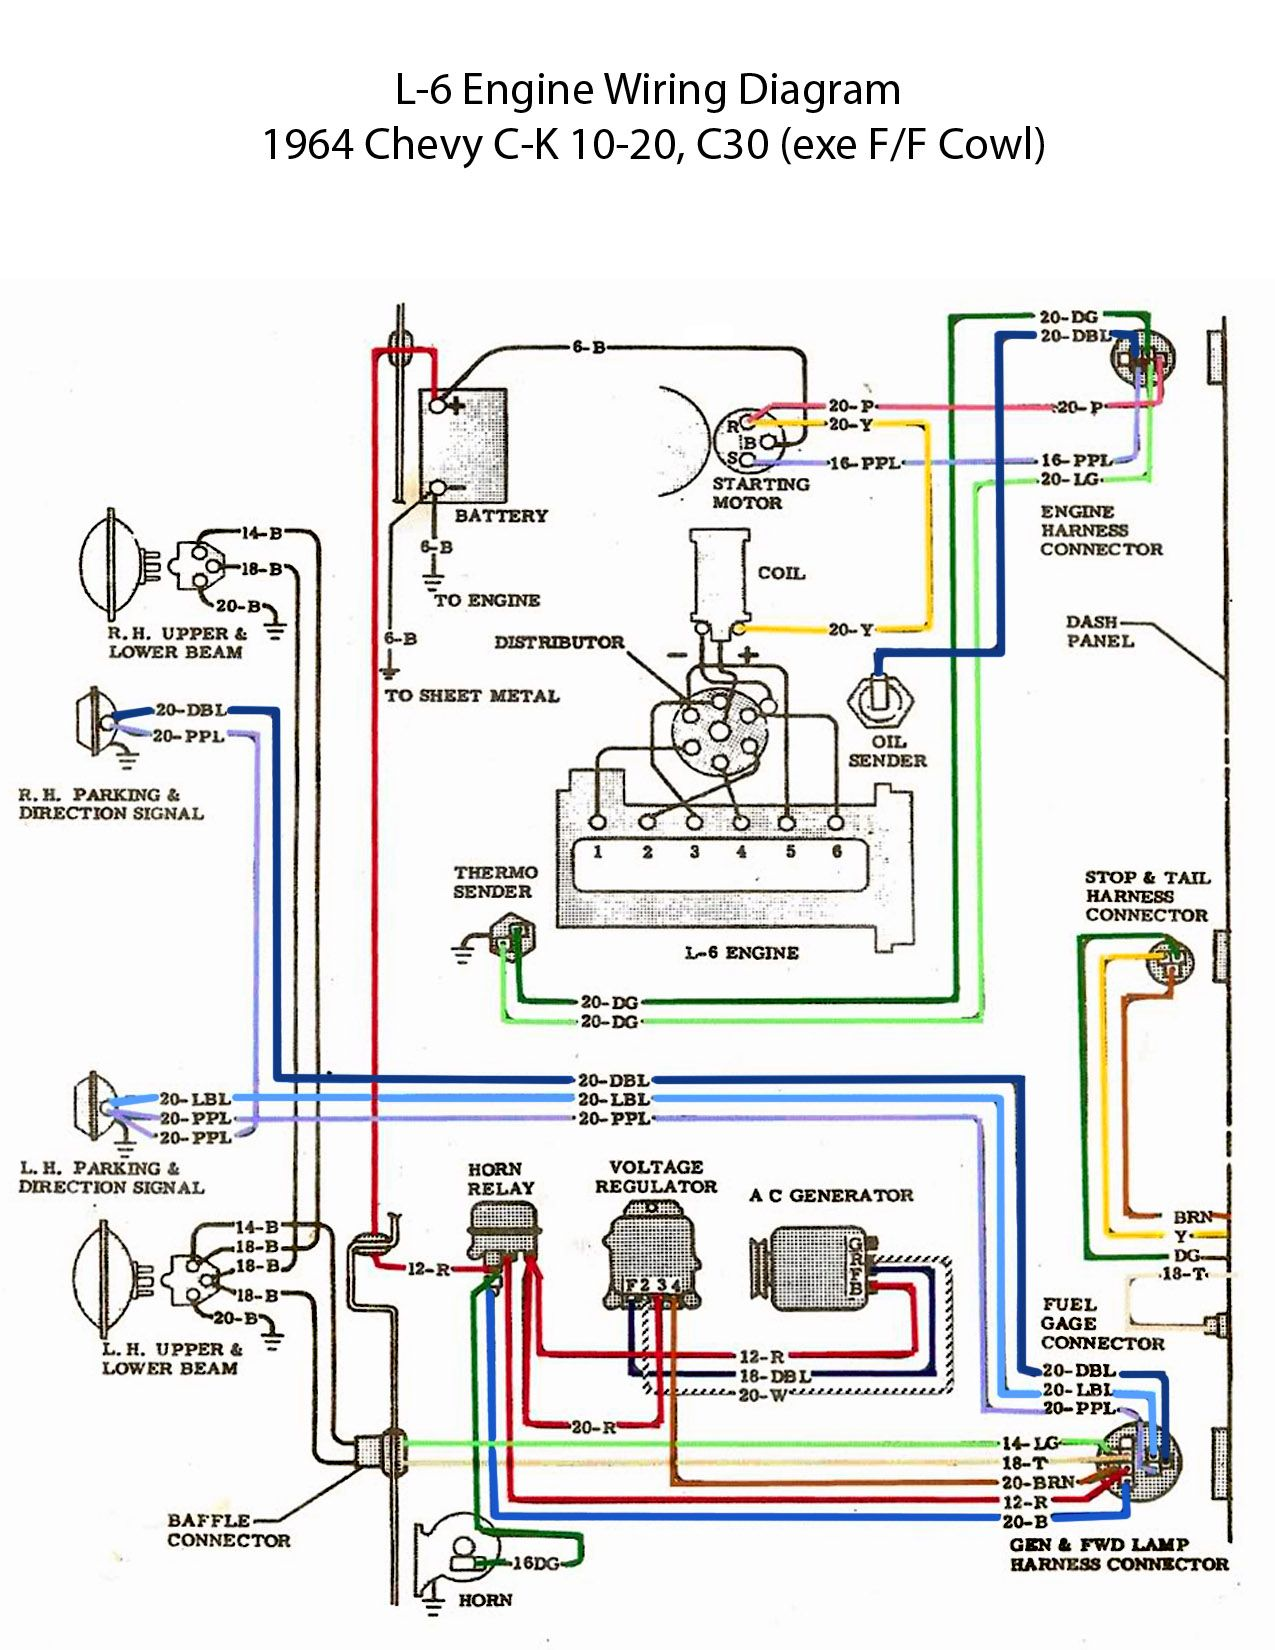 electric: l-6 engine wiring diagram | chevy trucks, 1963 chevy truck, chevy  pinterest